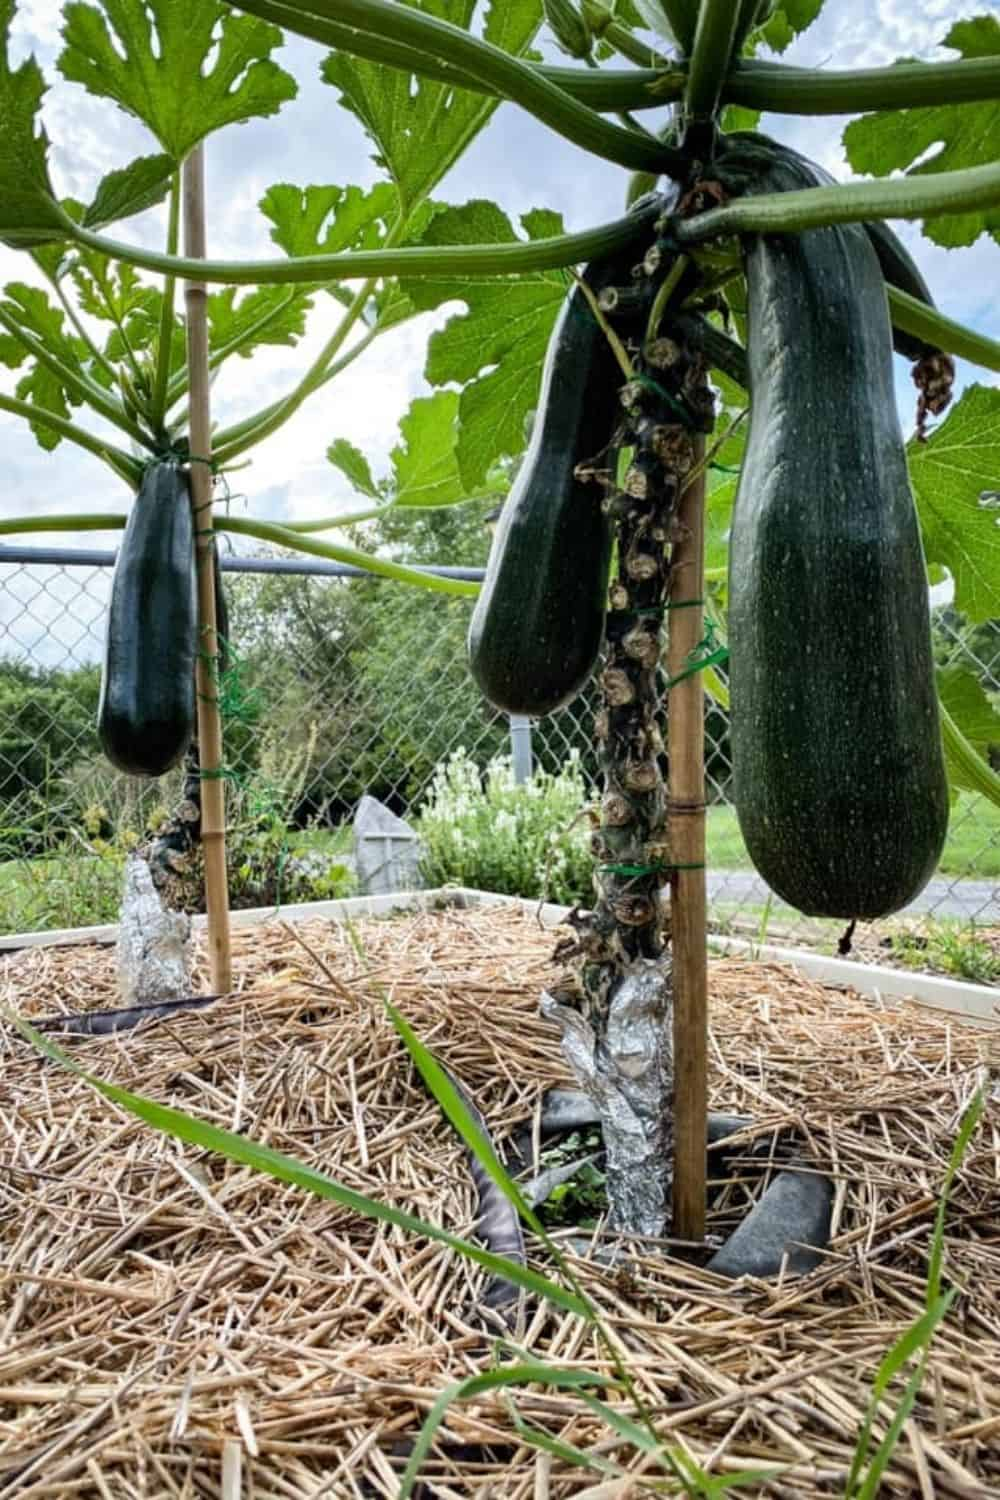 Vertical growing zucchini